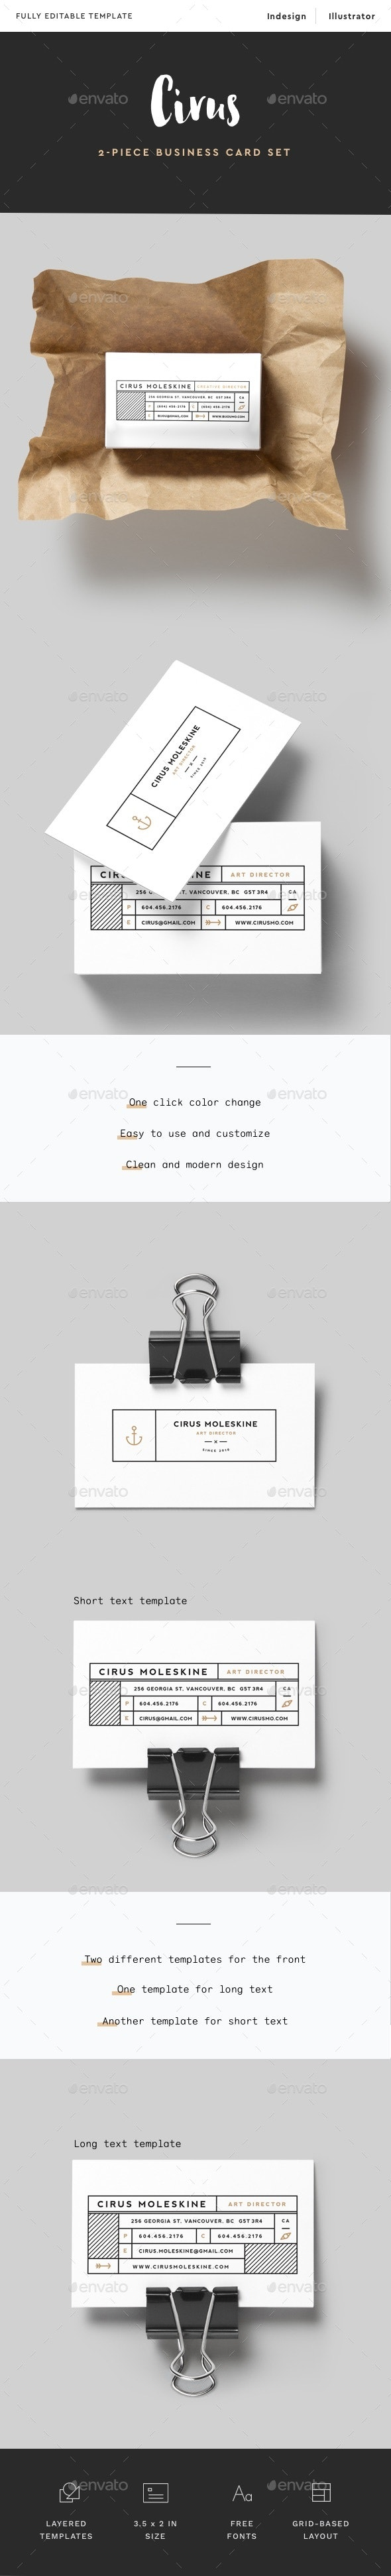 Minimal Modern Business Card - Business Cards Print Templates